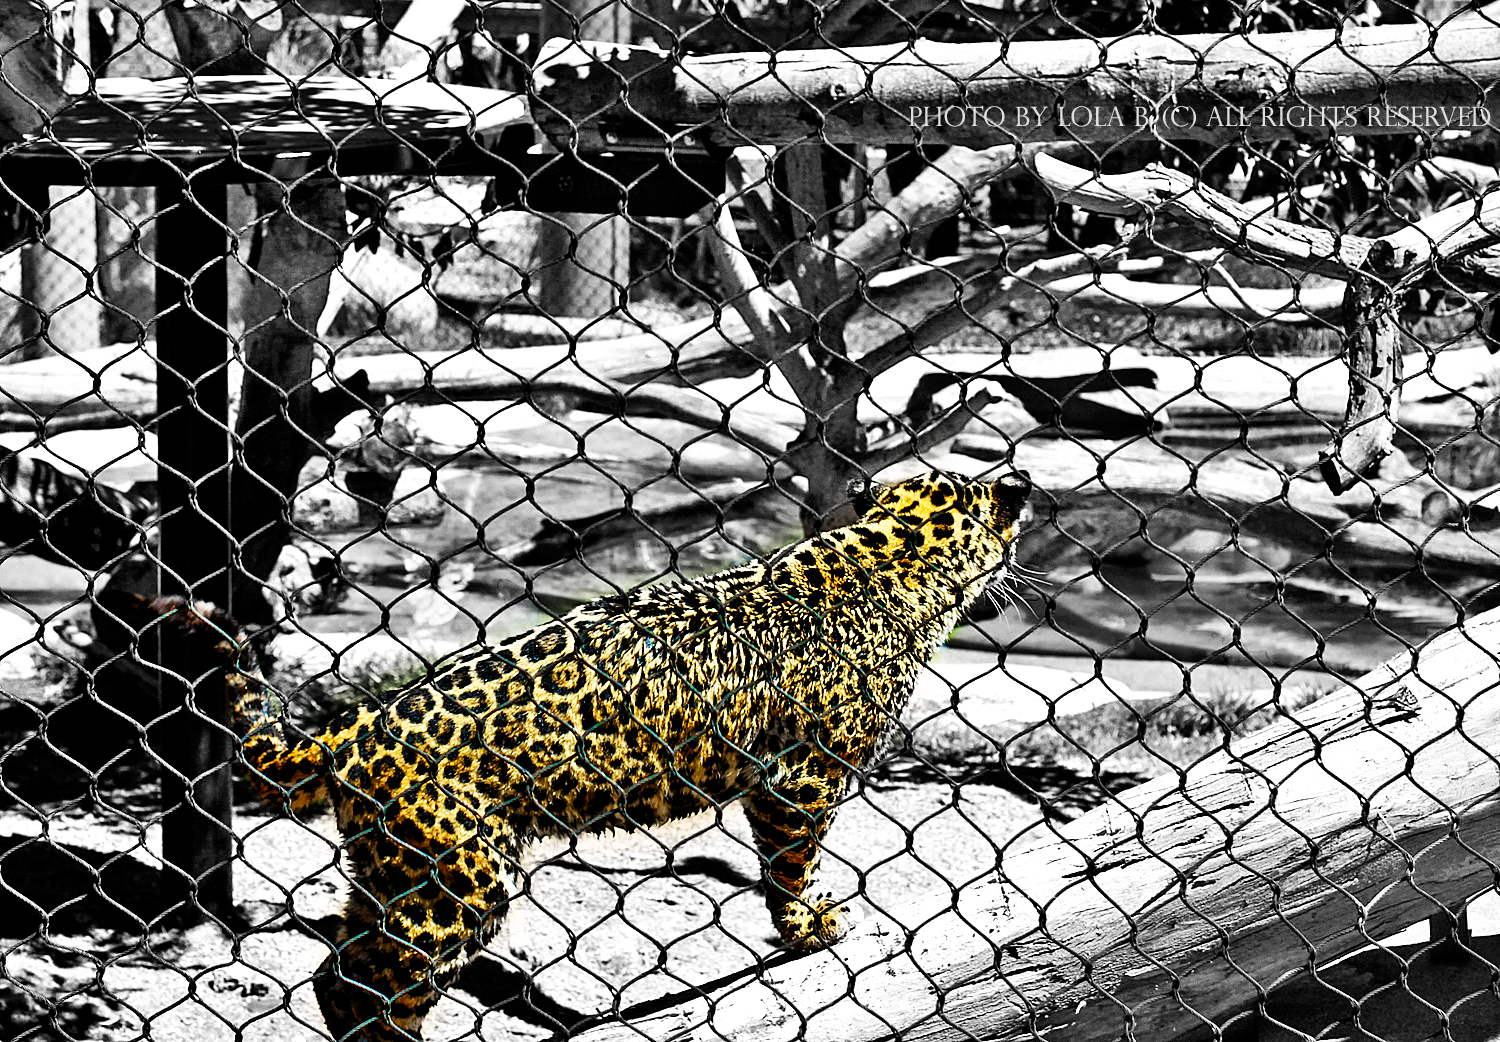 Cheetah at San Diego zoo